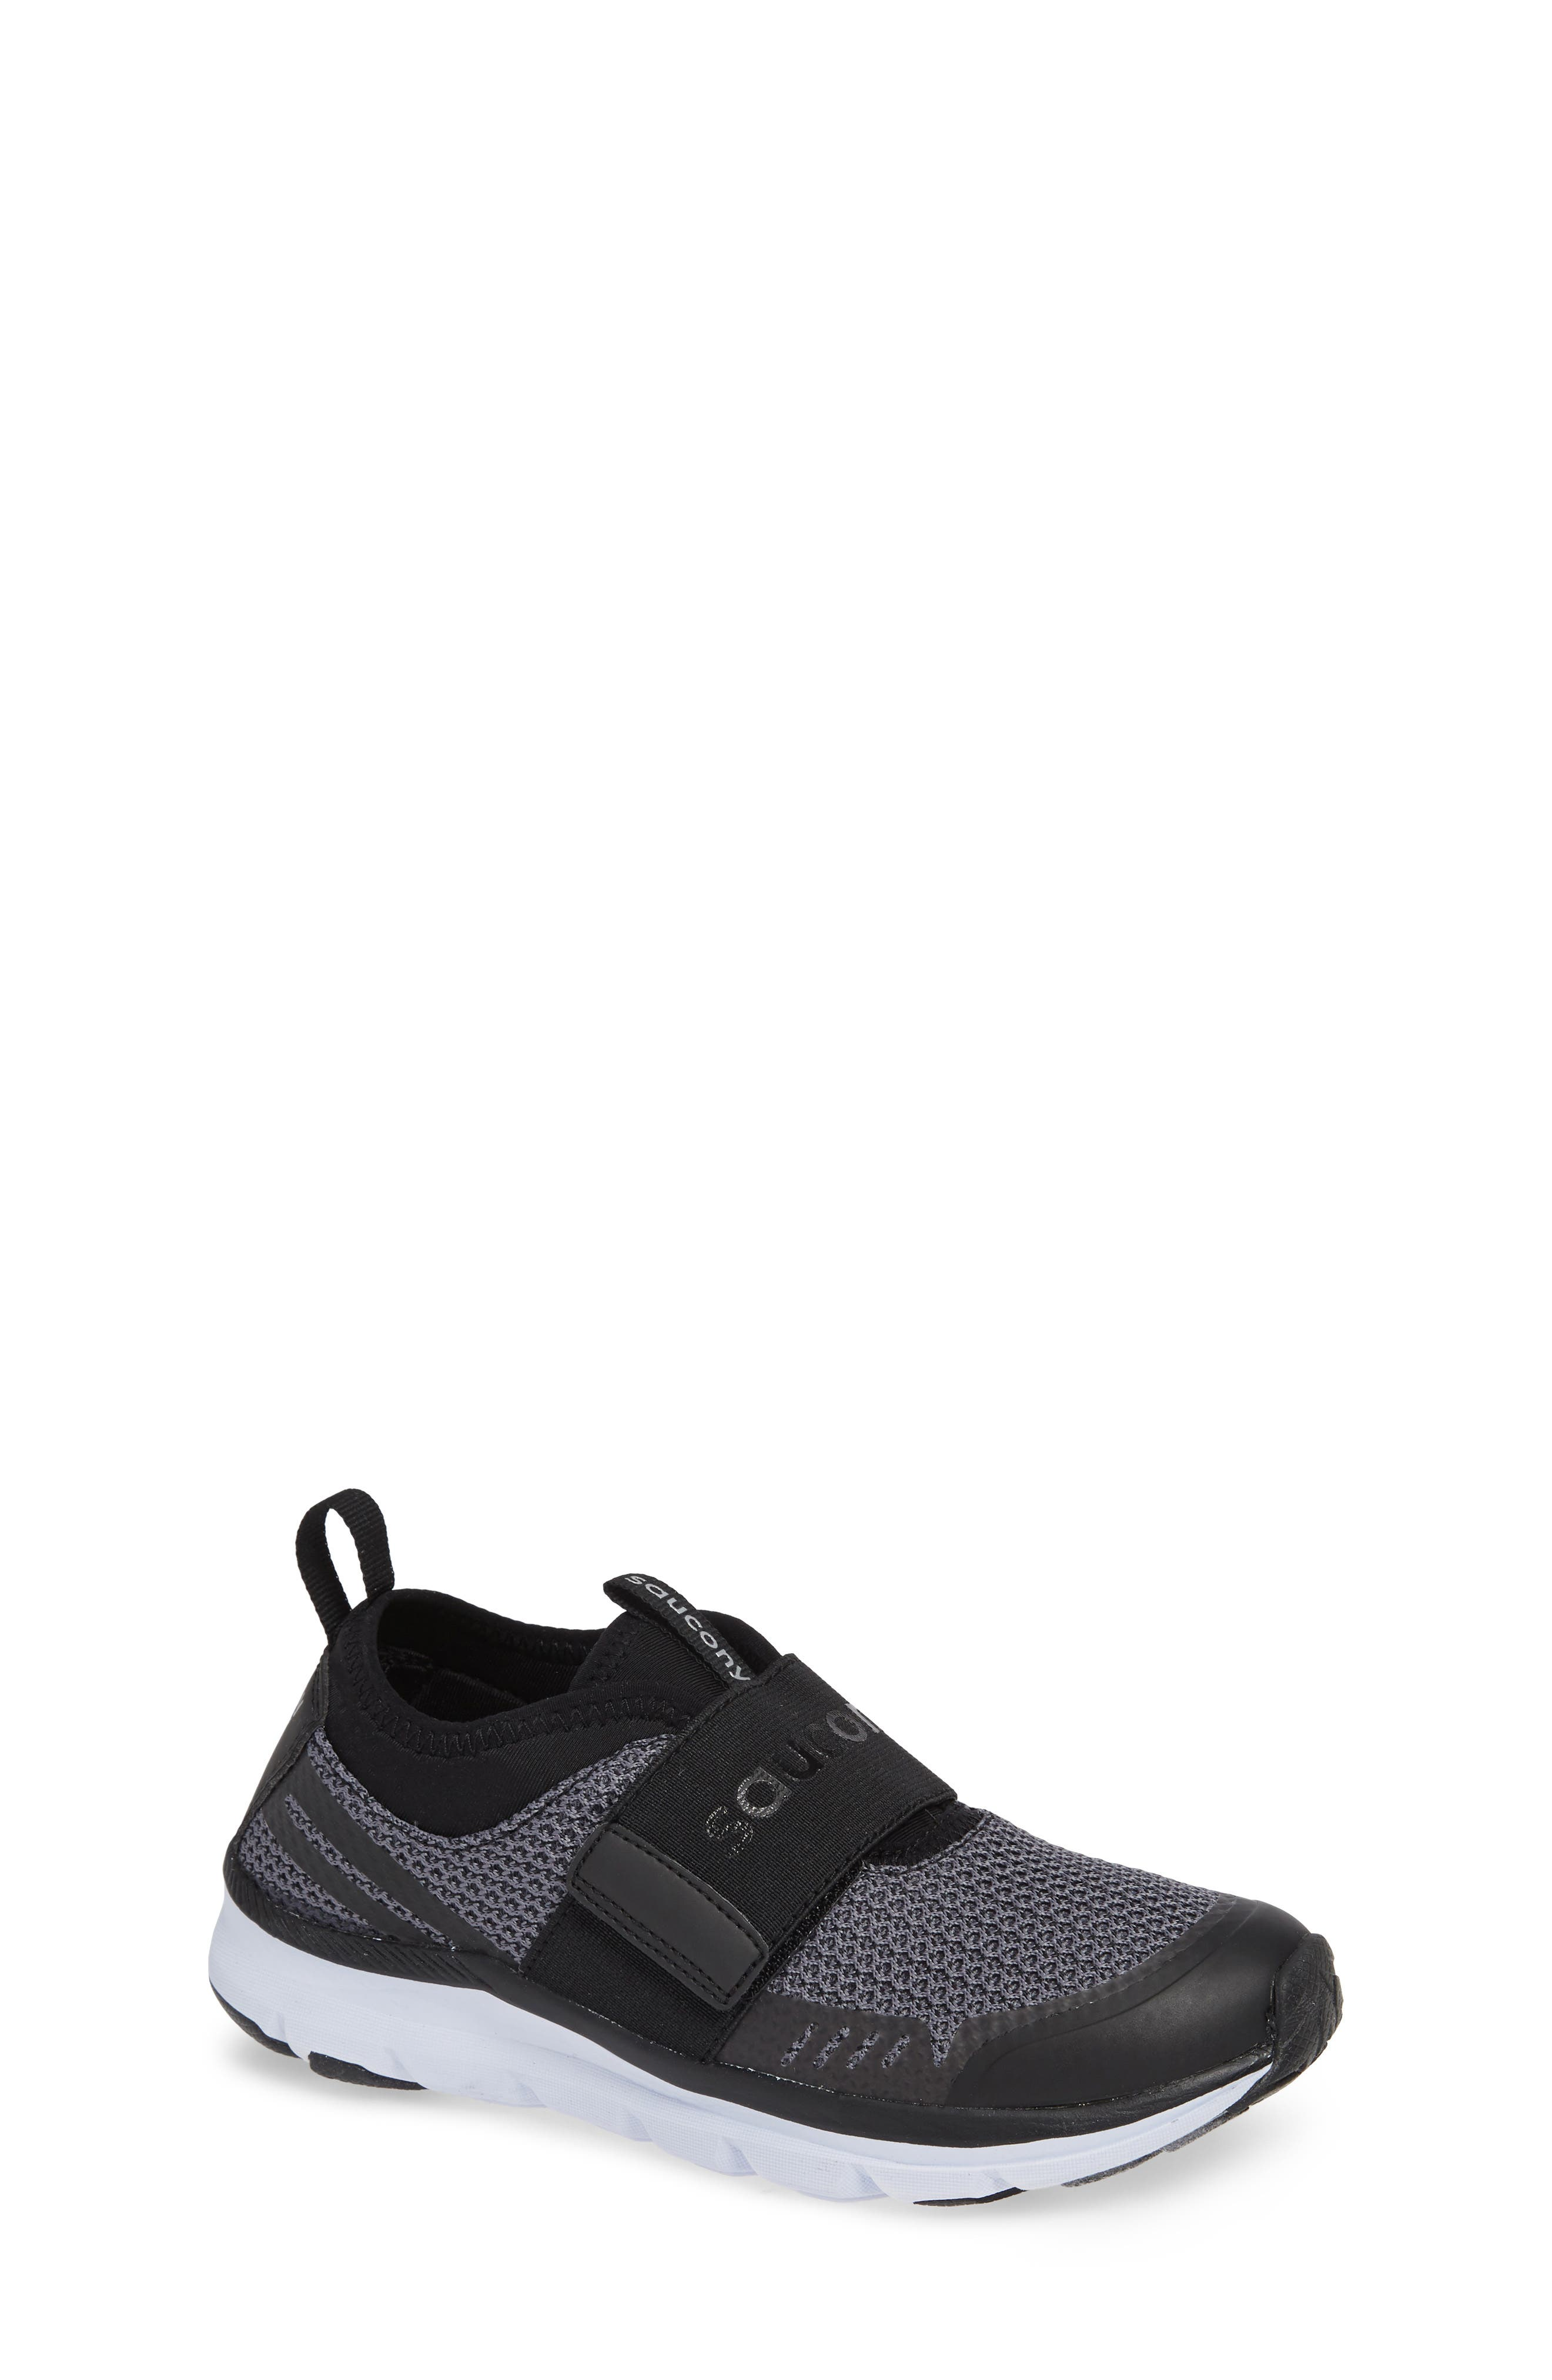 Liteform Stretch and Go A/C Sneaker,                             Main thumbnail 1, color,                             BLACK TEXTILE